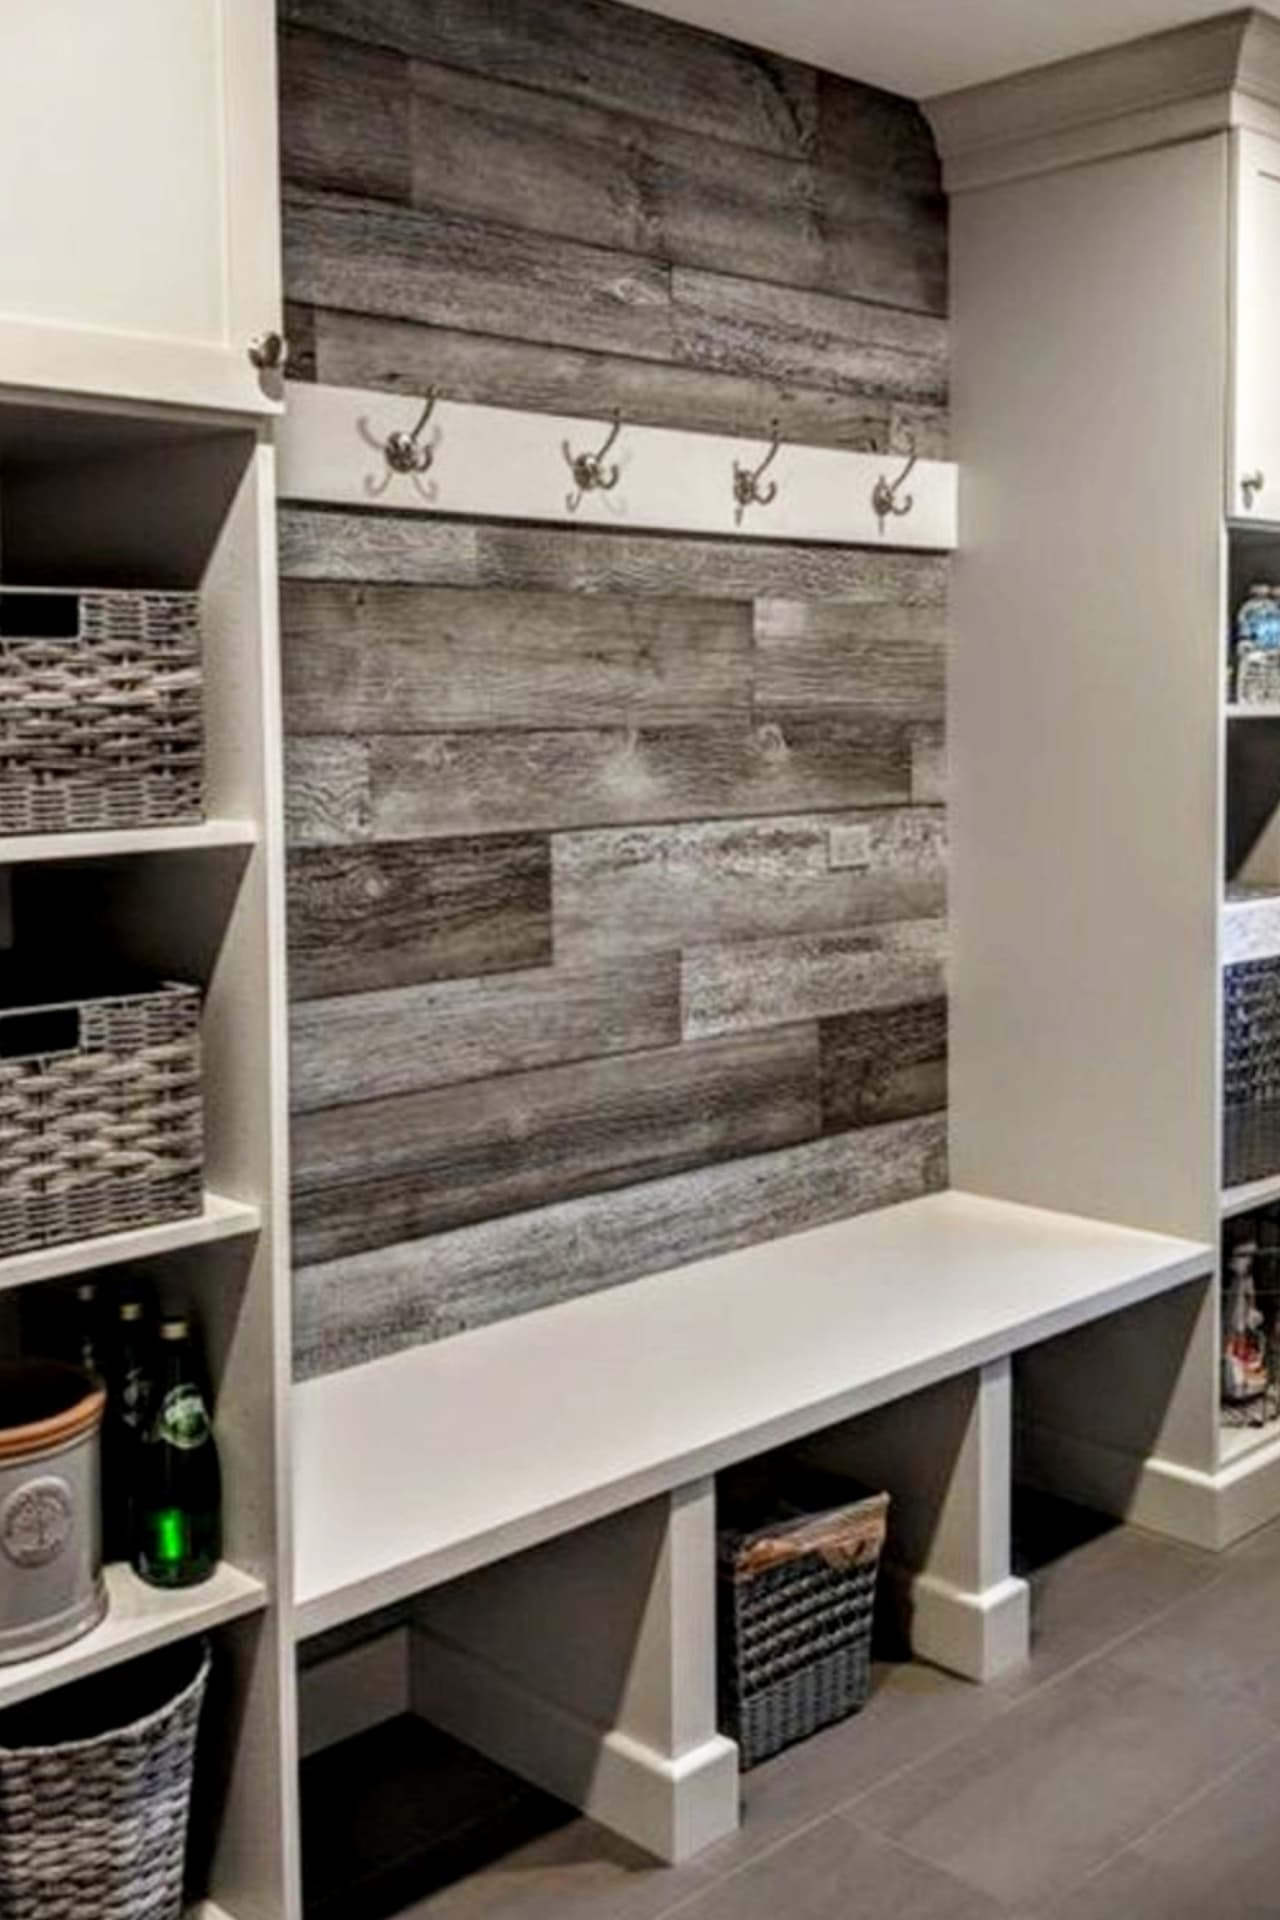 Pallet projects - easy DIY pallet wall decor - panel your walls with old pallet wood such clever home decorating pallet projects - pallet wood wall in mudroom - farmhouse mudroom accent wall ideas